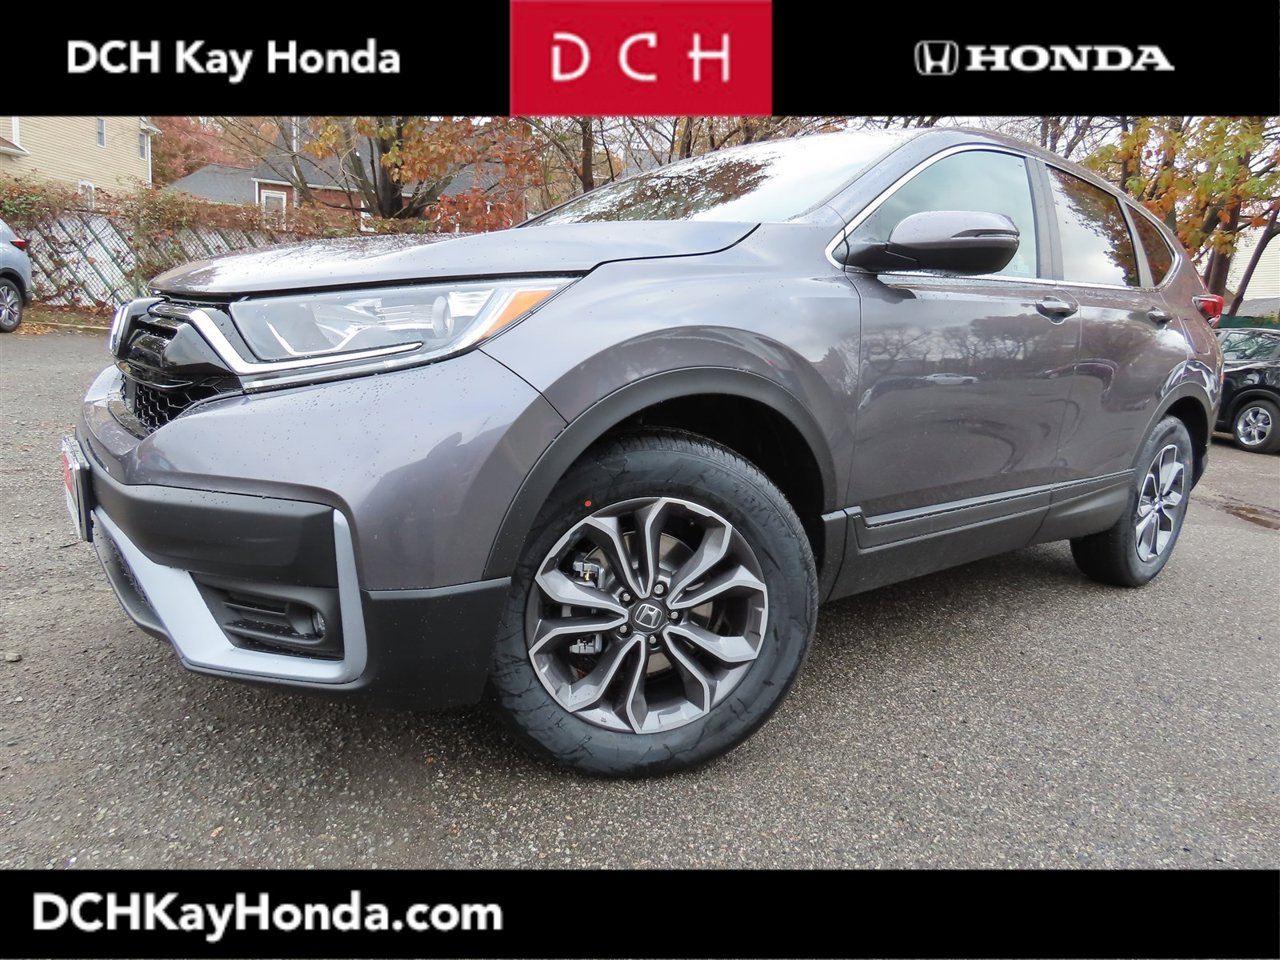 New 2020 Honda CR-V in Eatontown, NJ